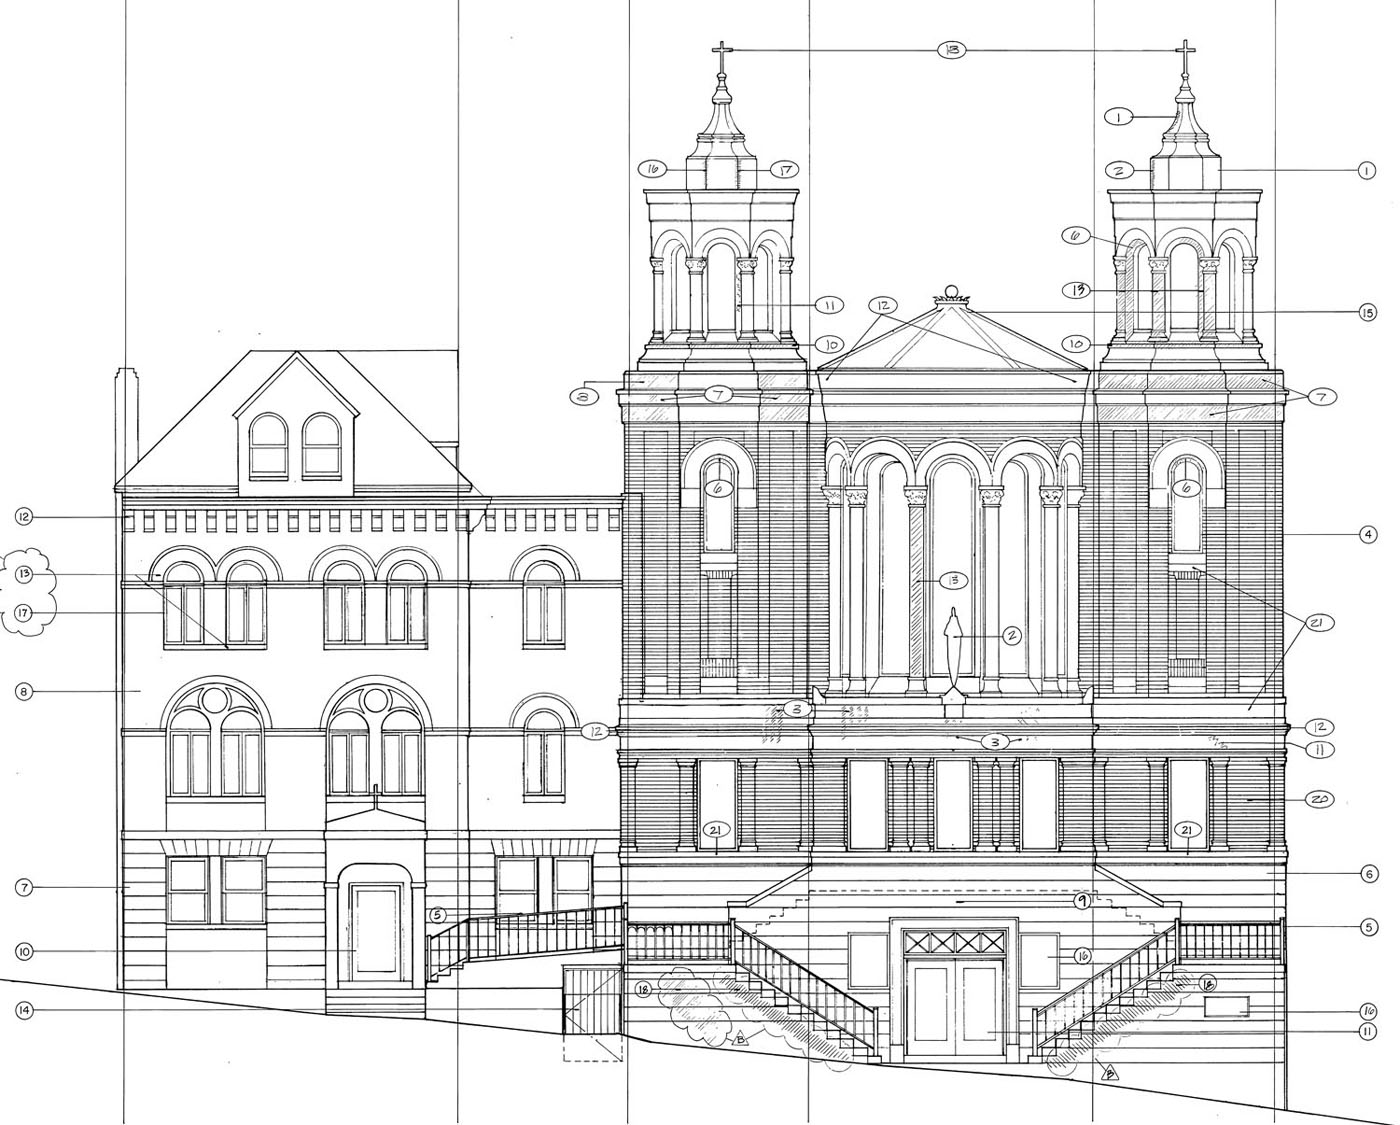 Building Front Elevation Drawings : Building front elevation drawings